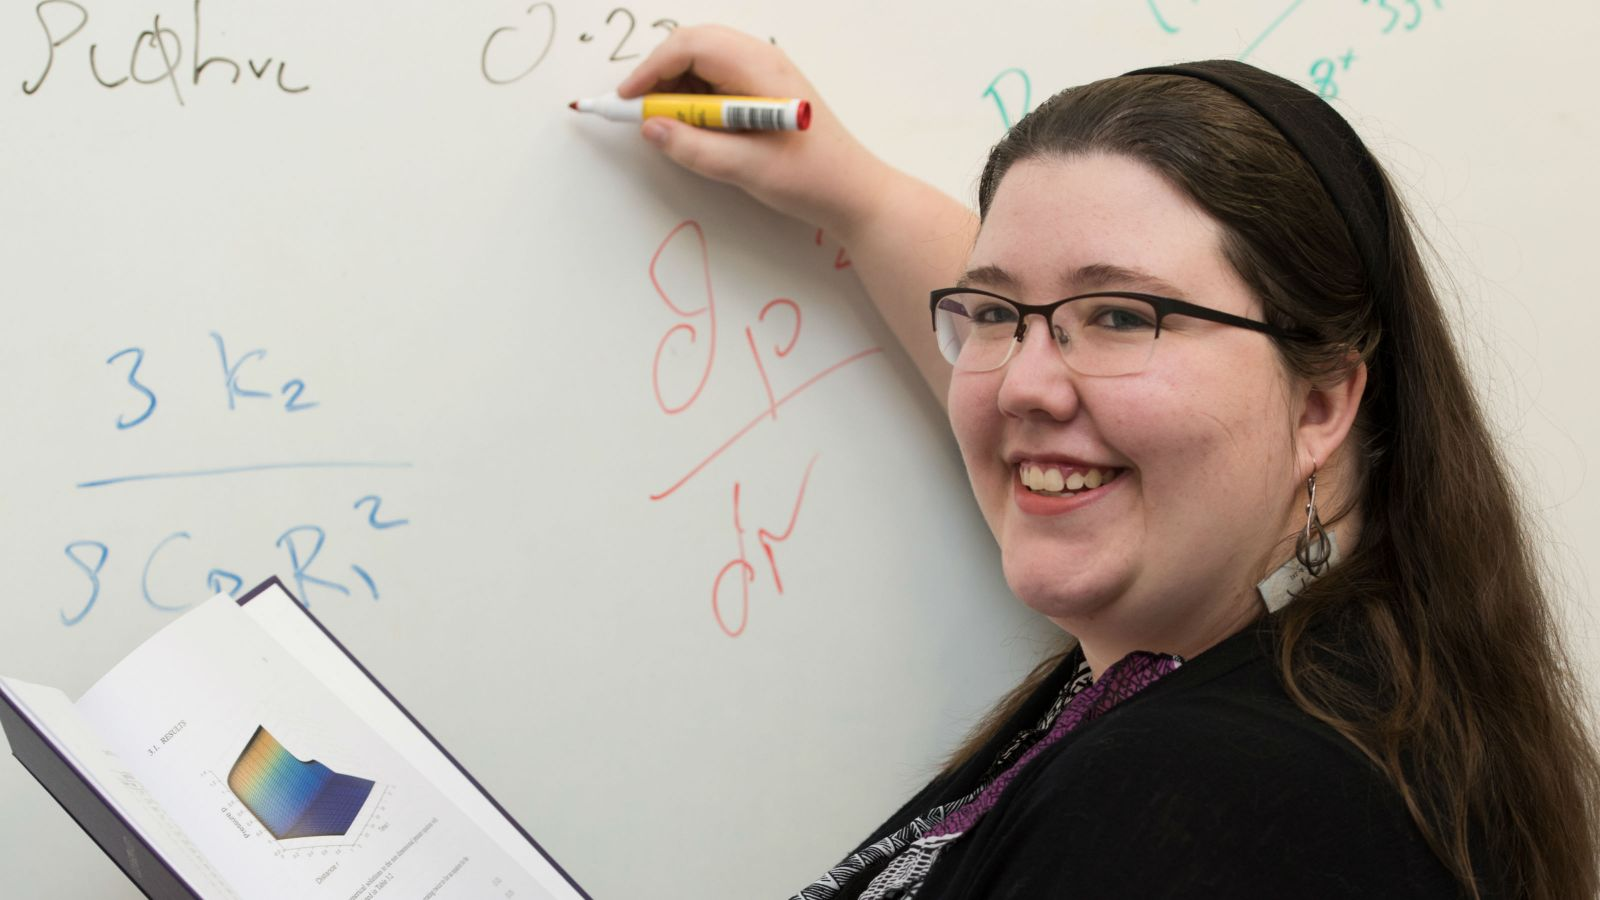 Emma Greenbank writes mathematical equations on a whiteboard with an book propped open.